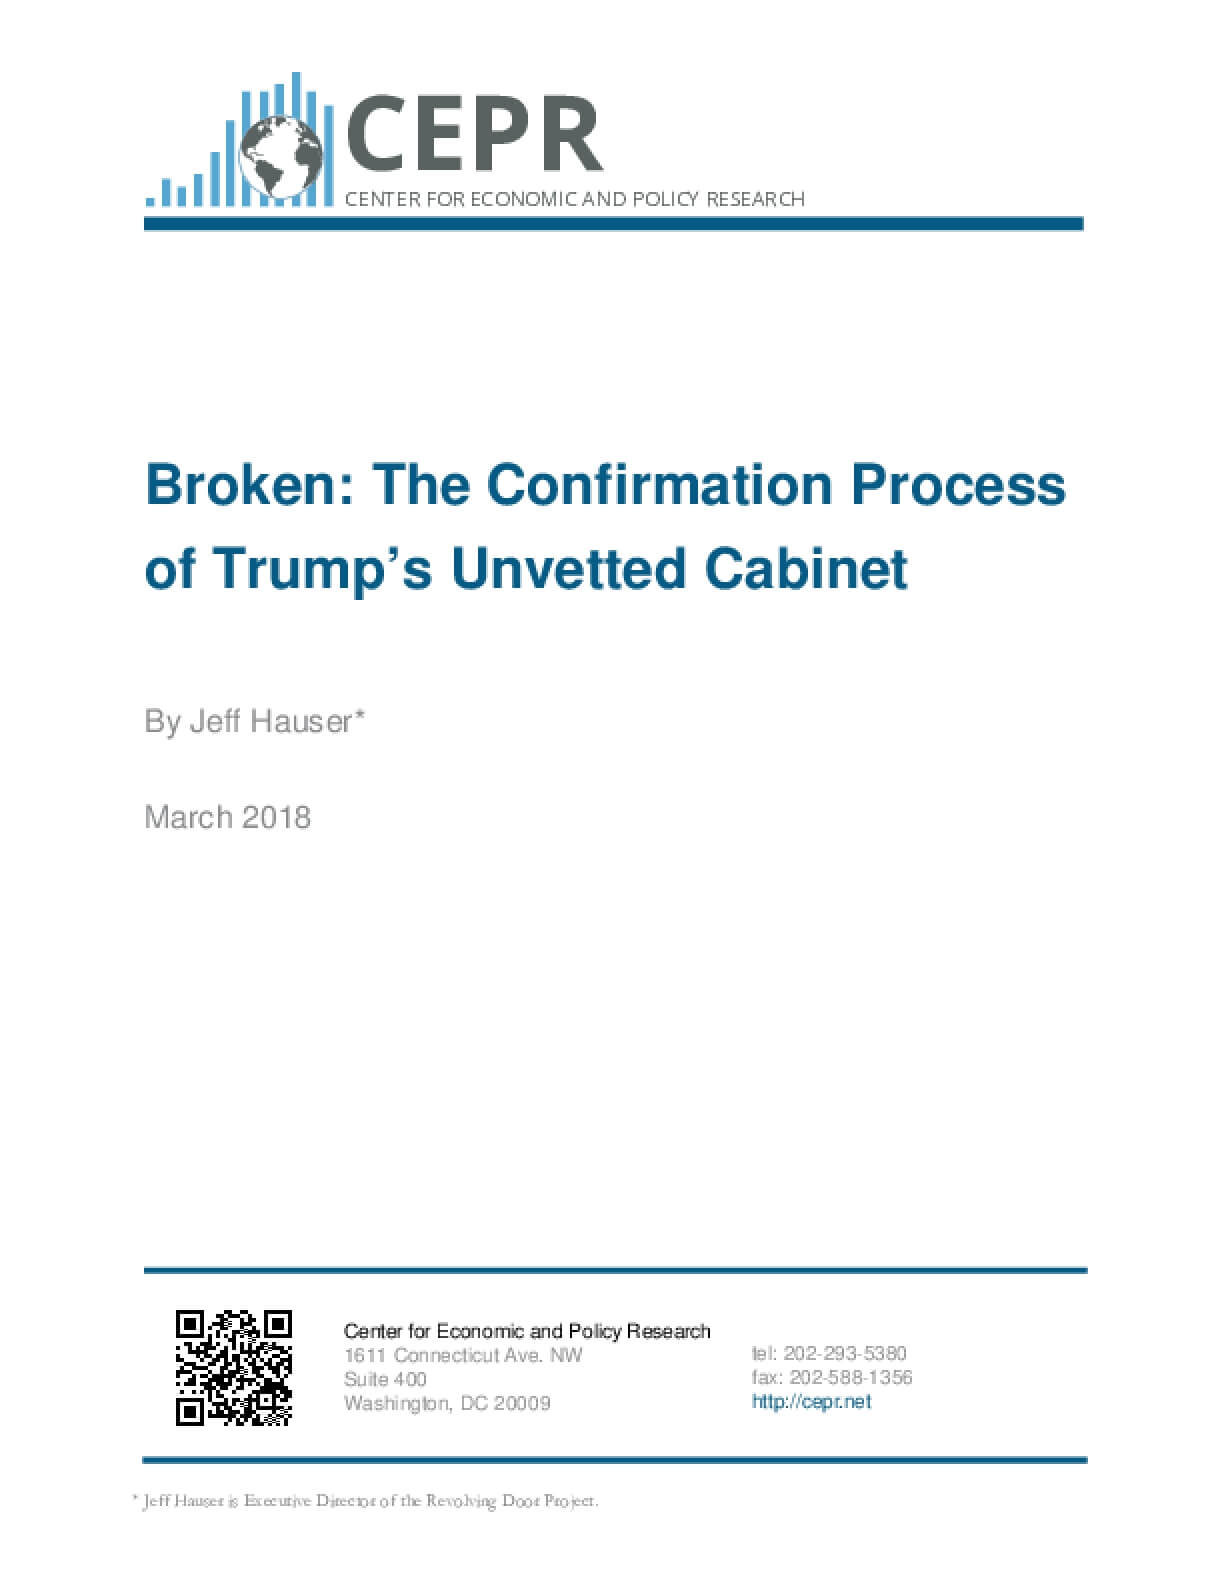 Broken: The Confirmation Process of Trump's Unvetted Cabinet